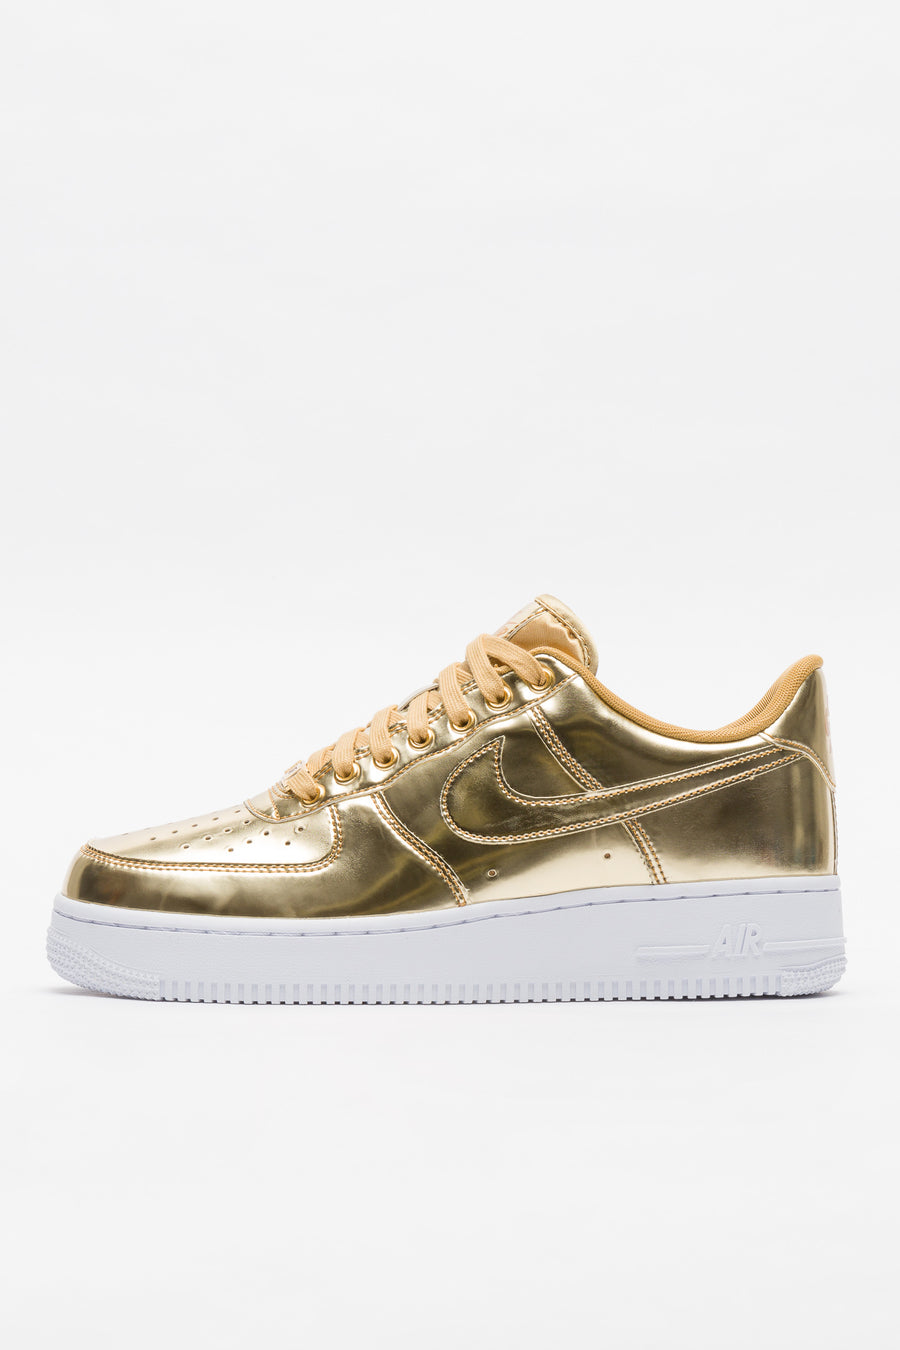 2air force 1 gold